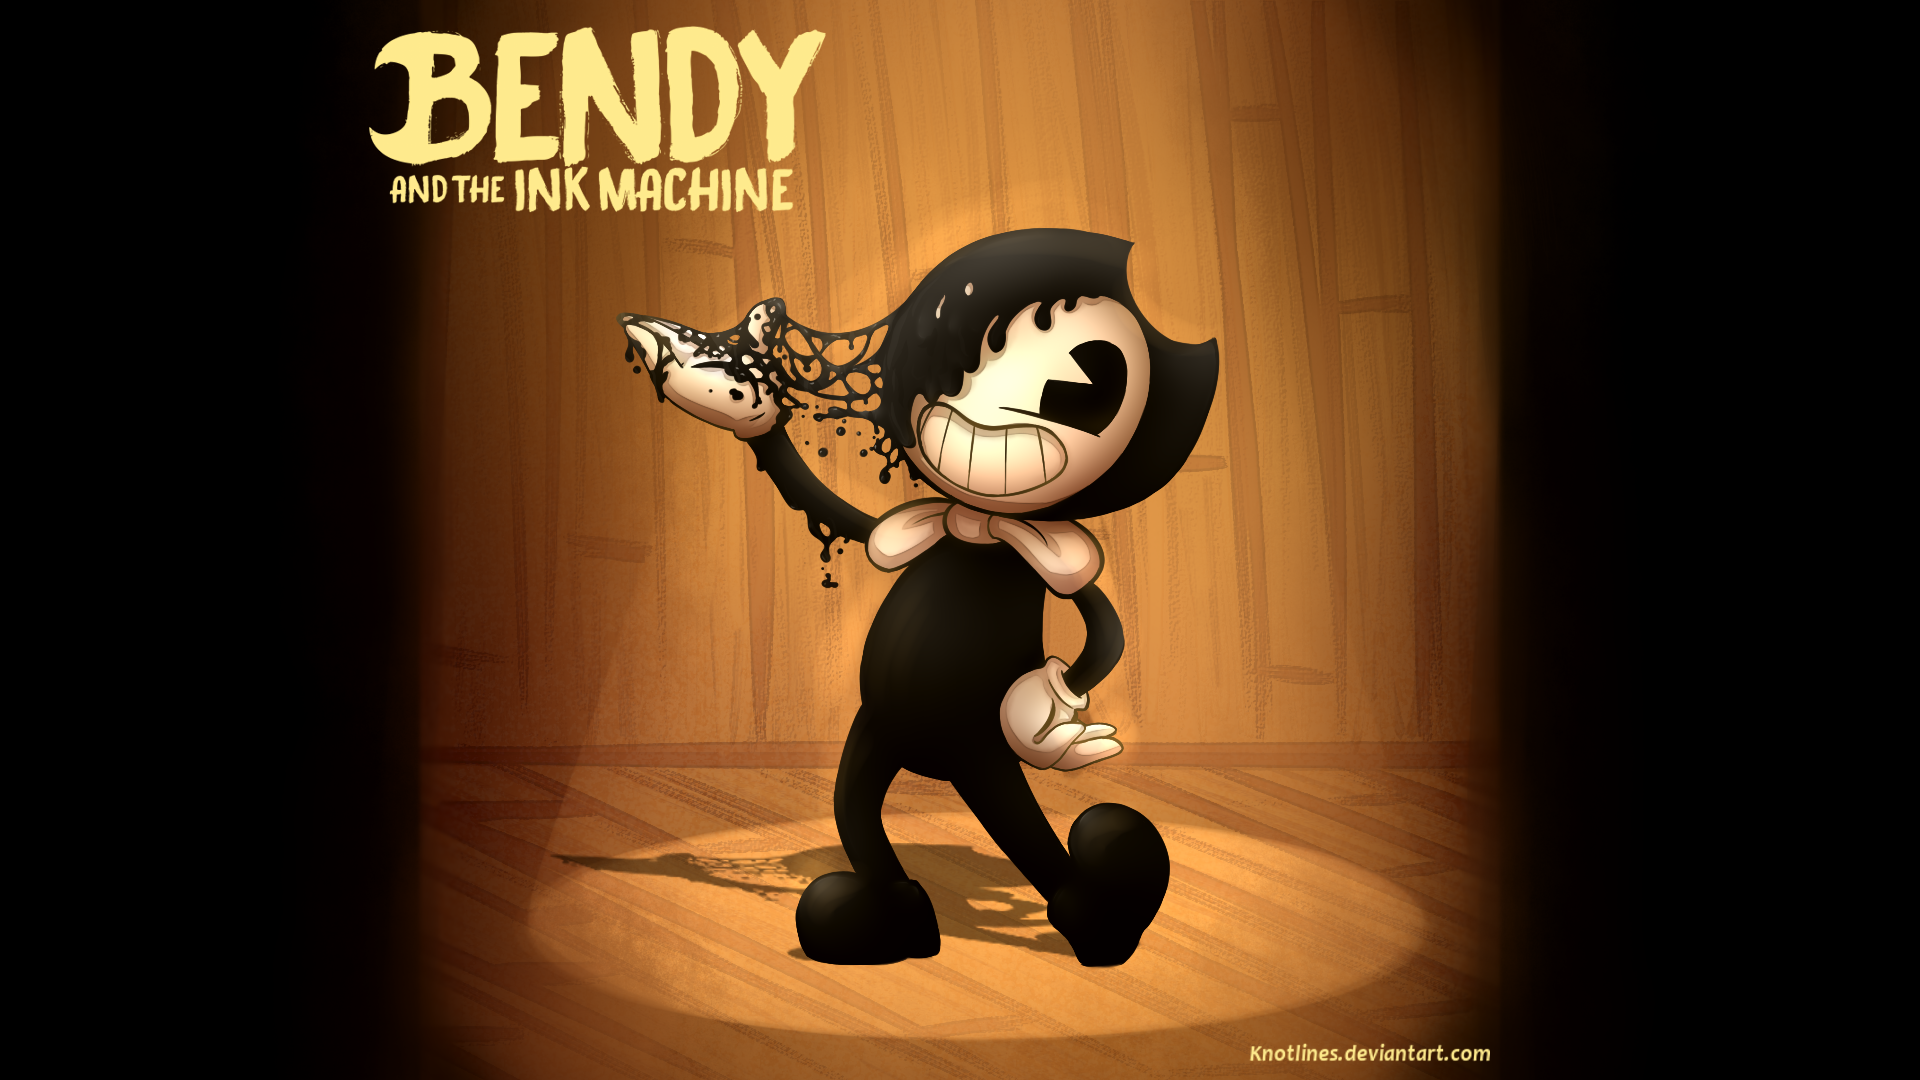 Bendy Wallpapers Top Free Bendy Backgrounds Wallpaperaccess